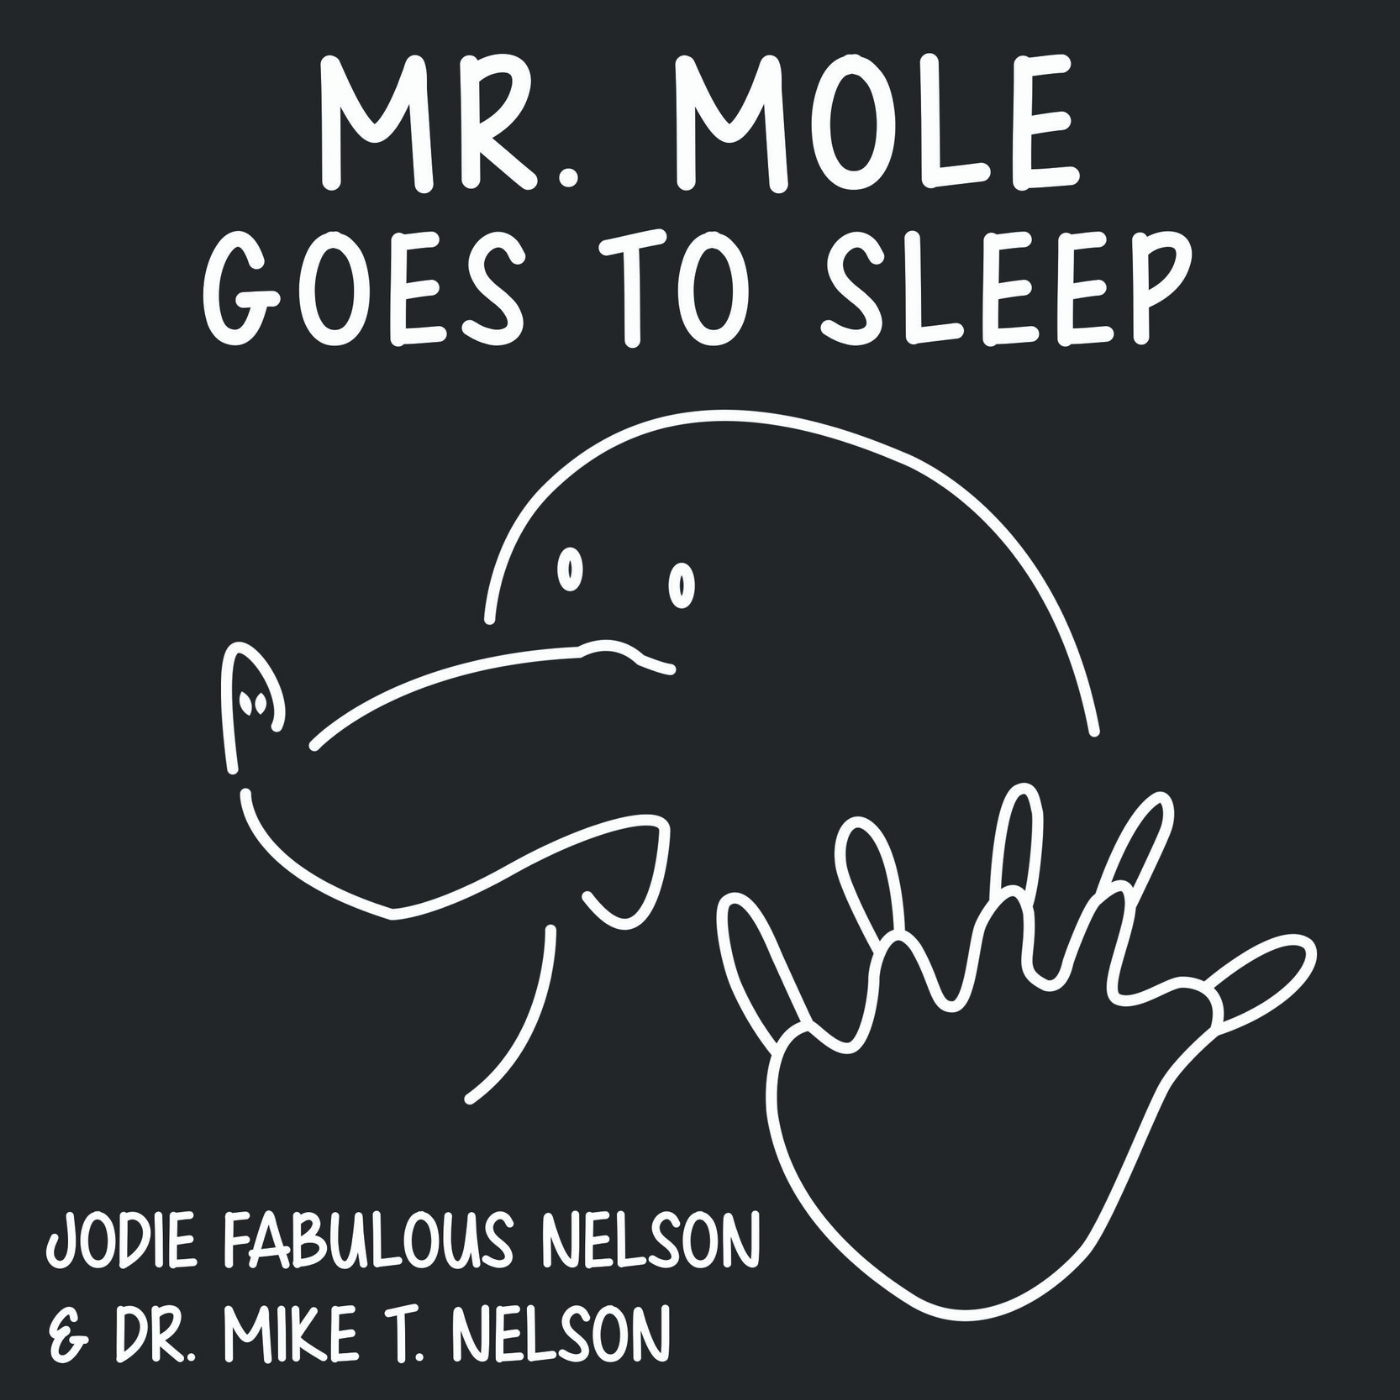 Mr Mole Goes to Sleep book cover - Mike Jodie Nelson eatmovelive52